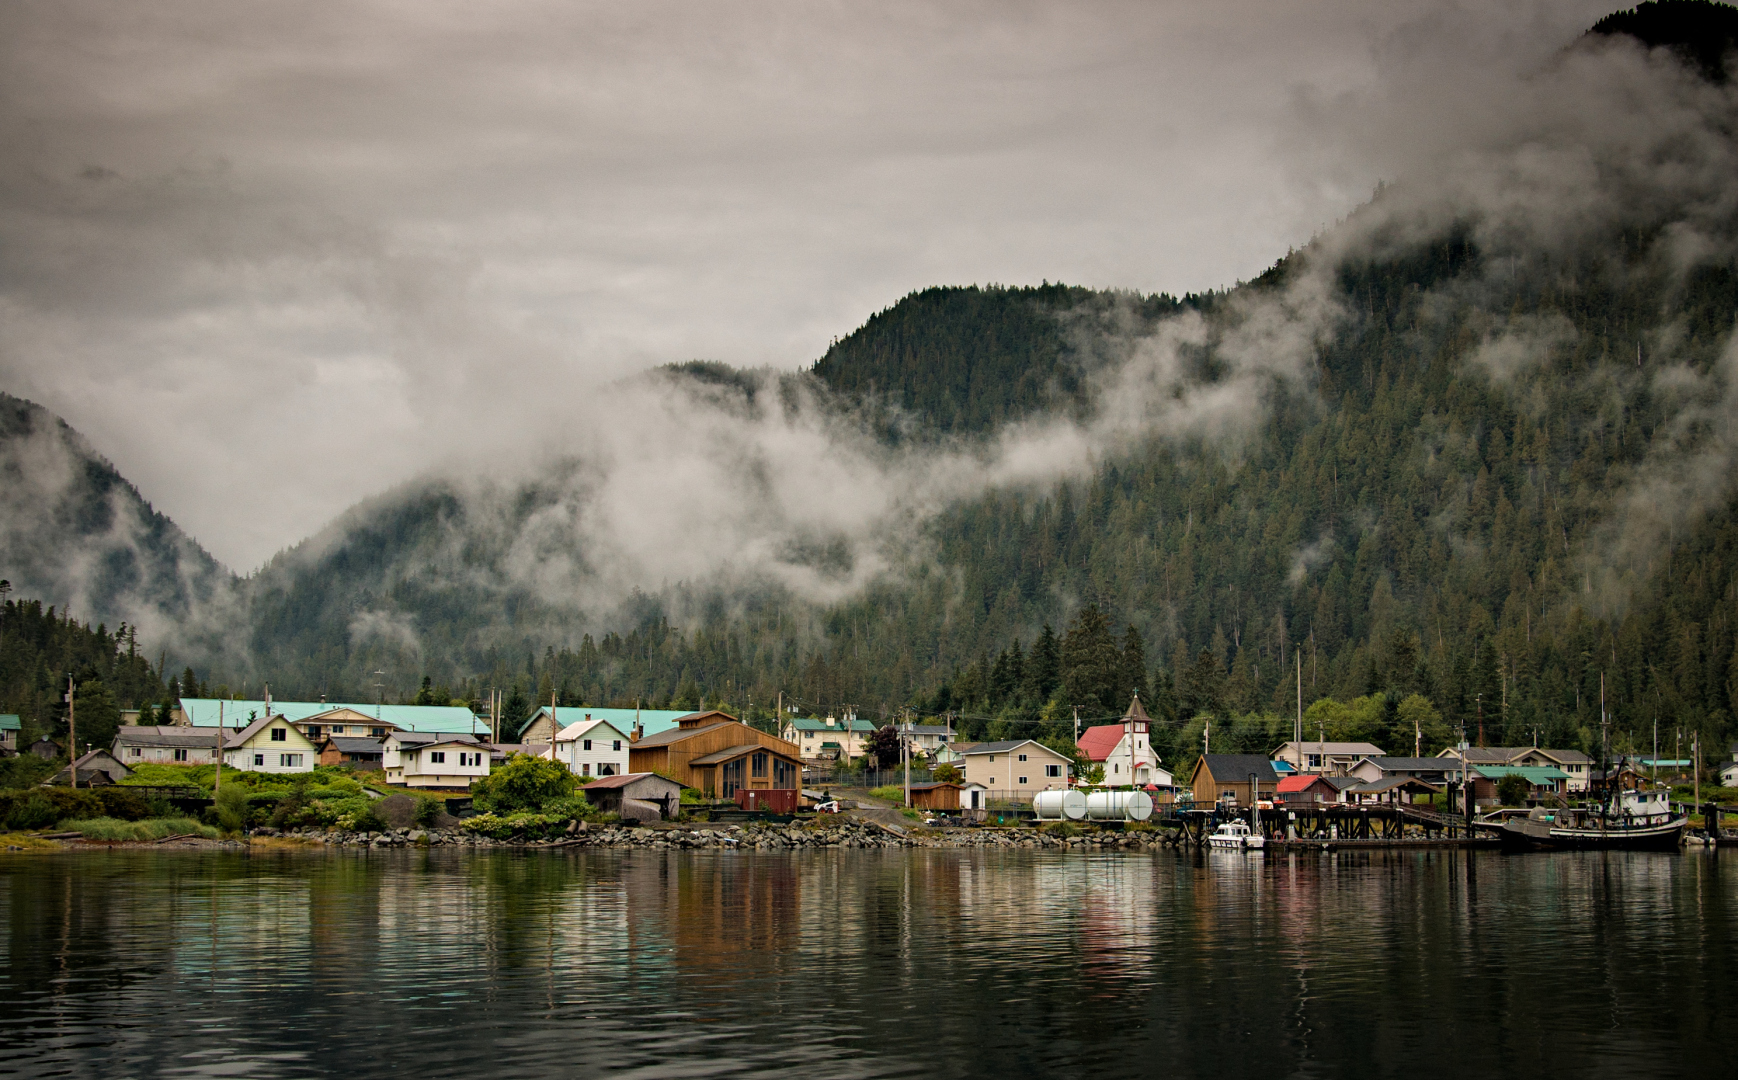 Water Governance and Watershed Planning in British Columbia First Nations Communities